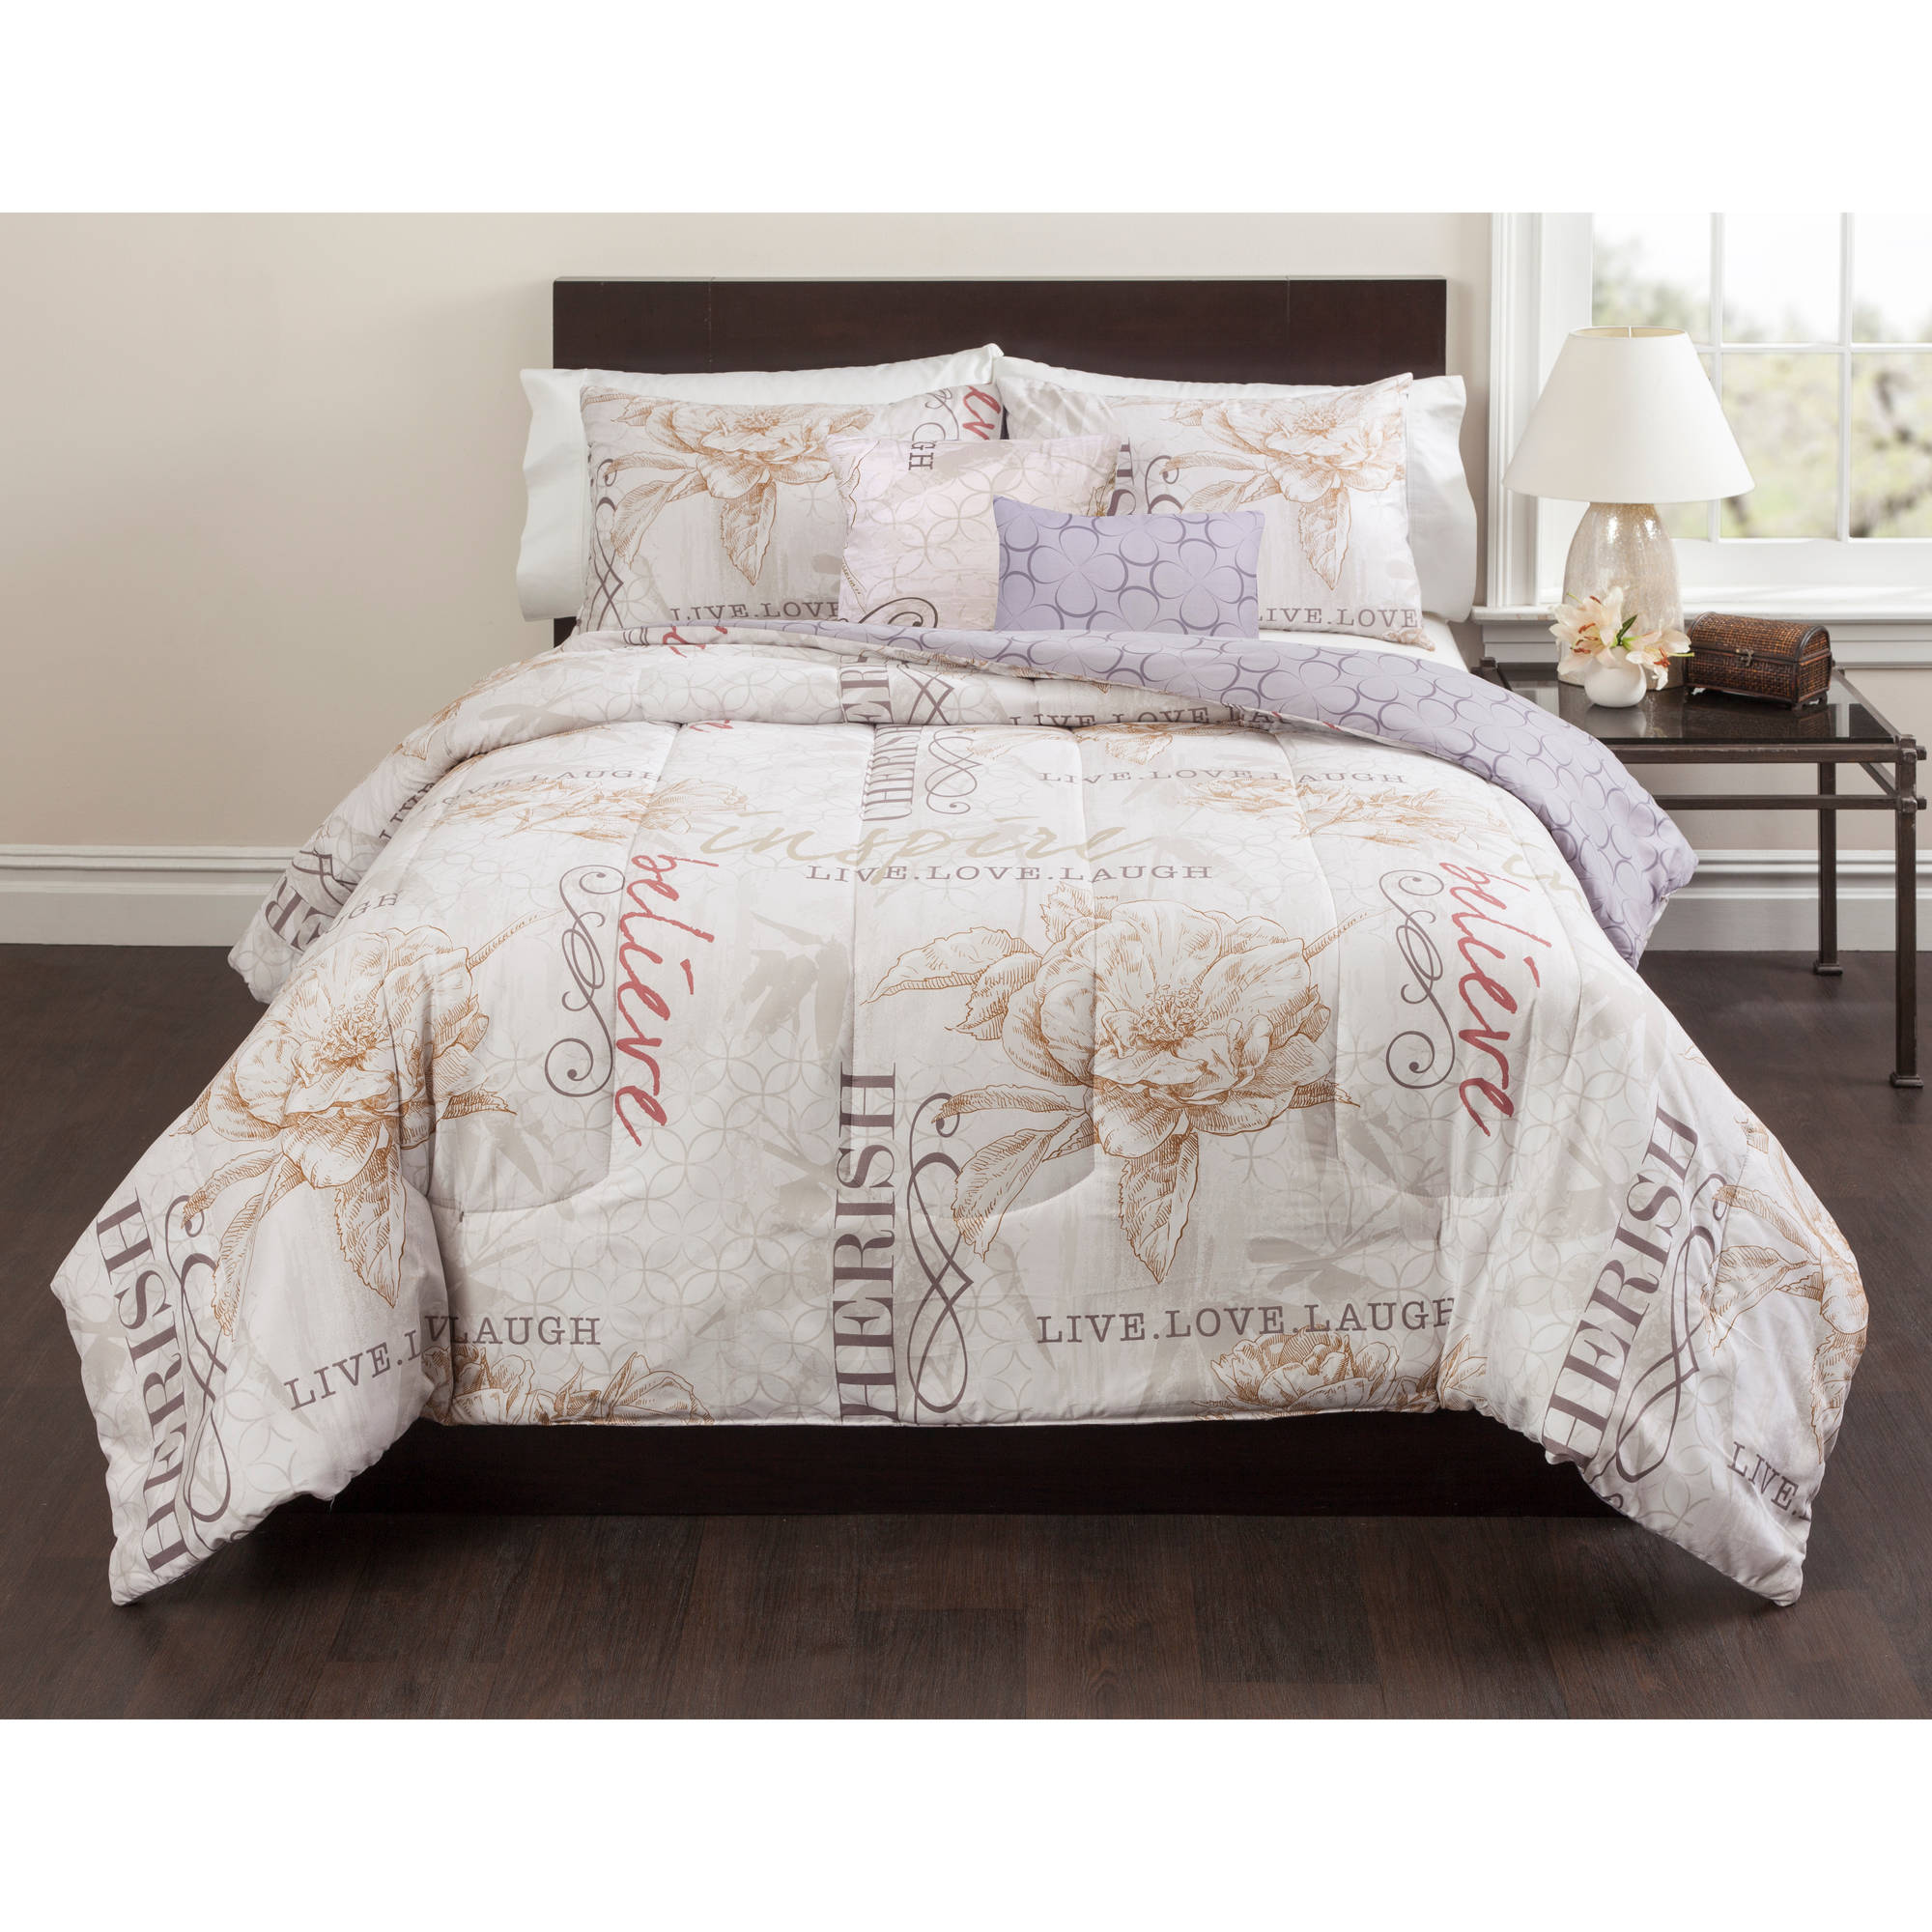 Casa Live, Laugh, Love 5-Piece Bedding Comforter Set